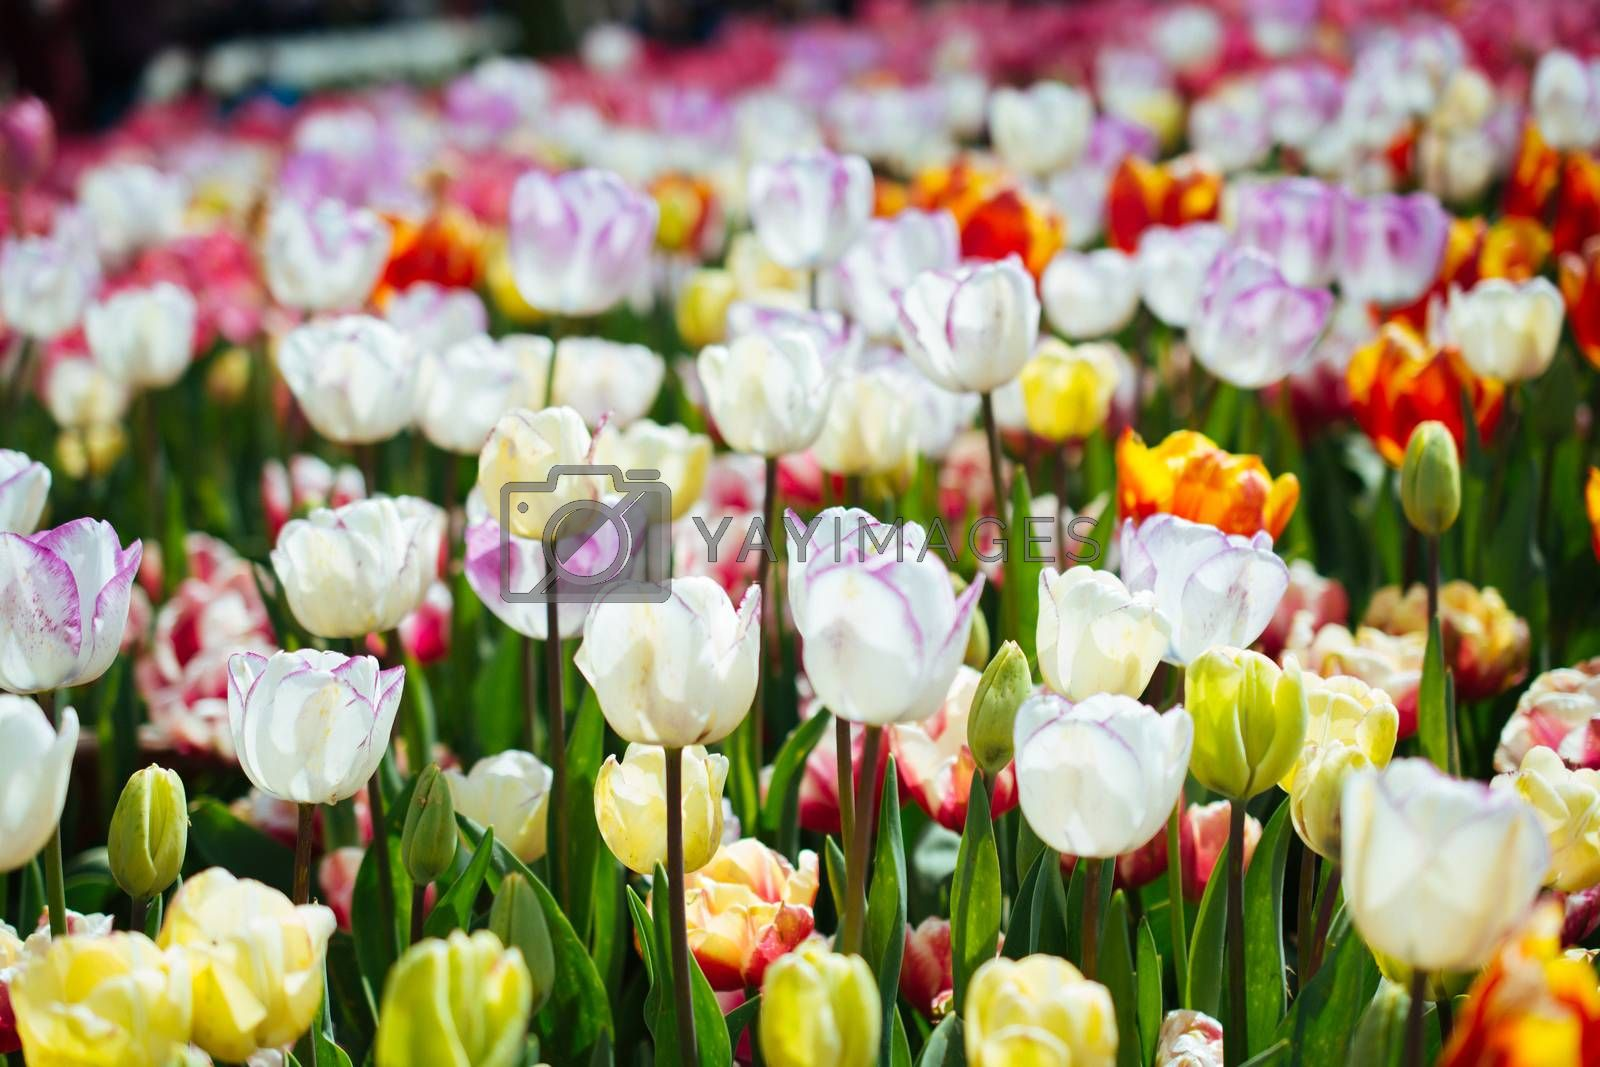 Blooming colorful tulip flowers as floral background by berkay